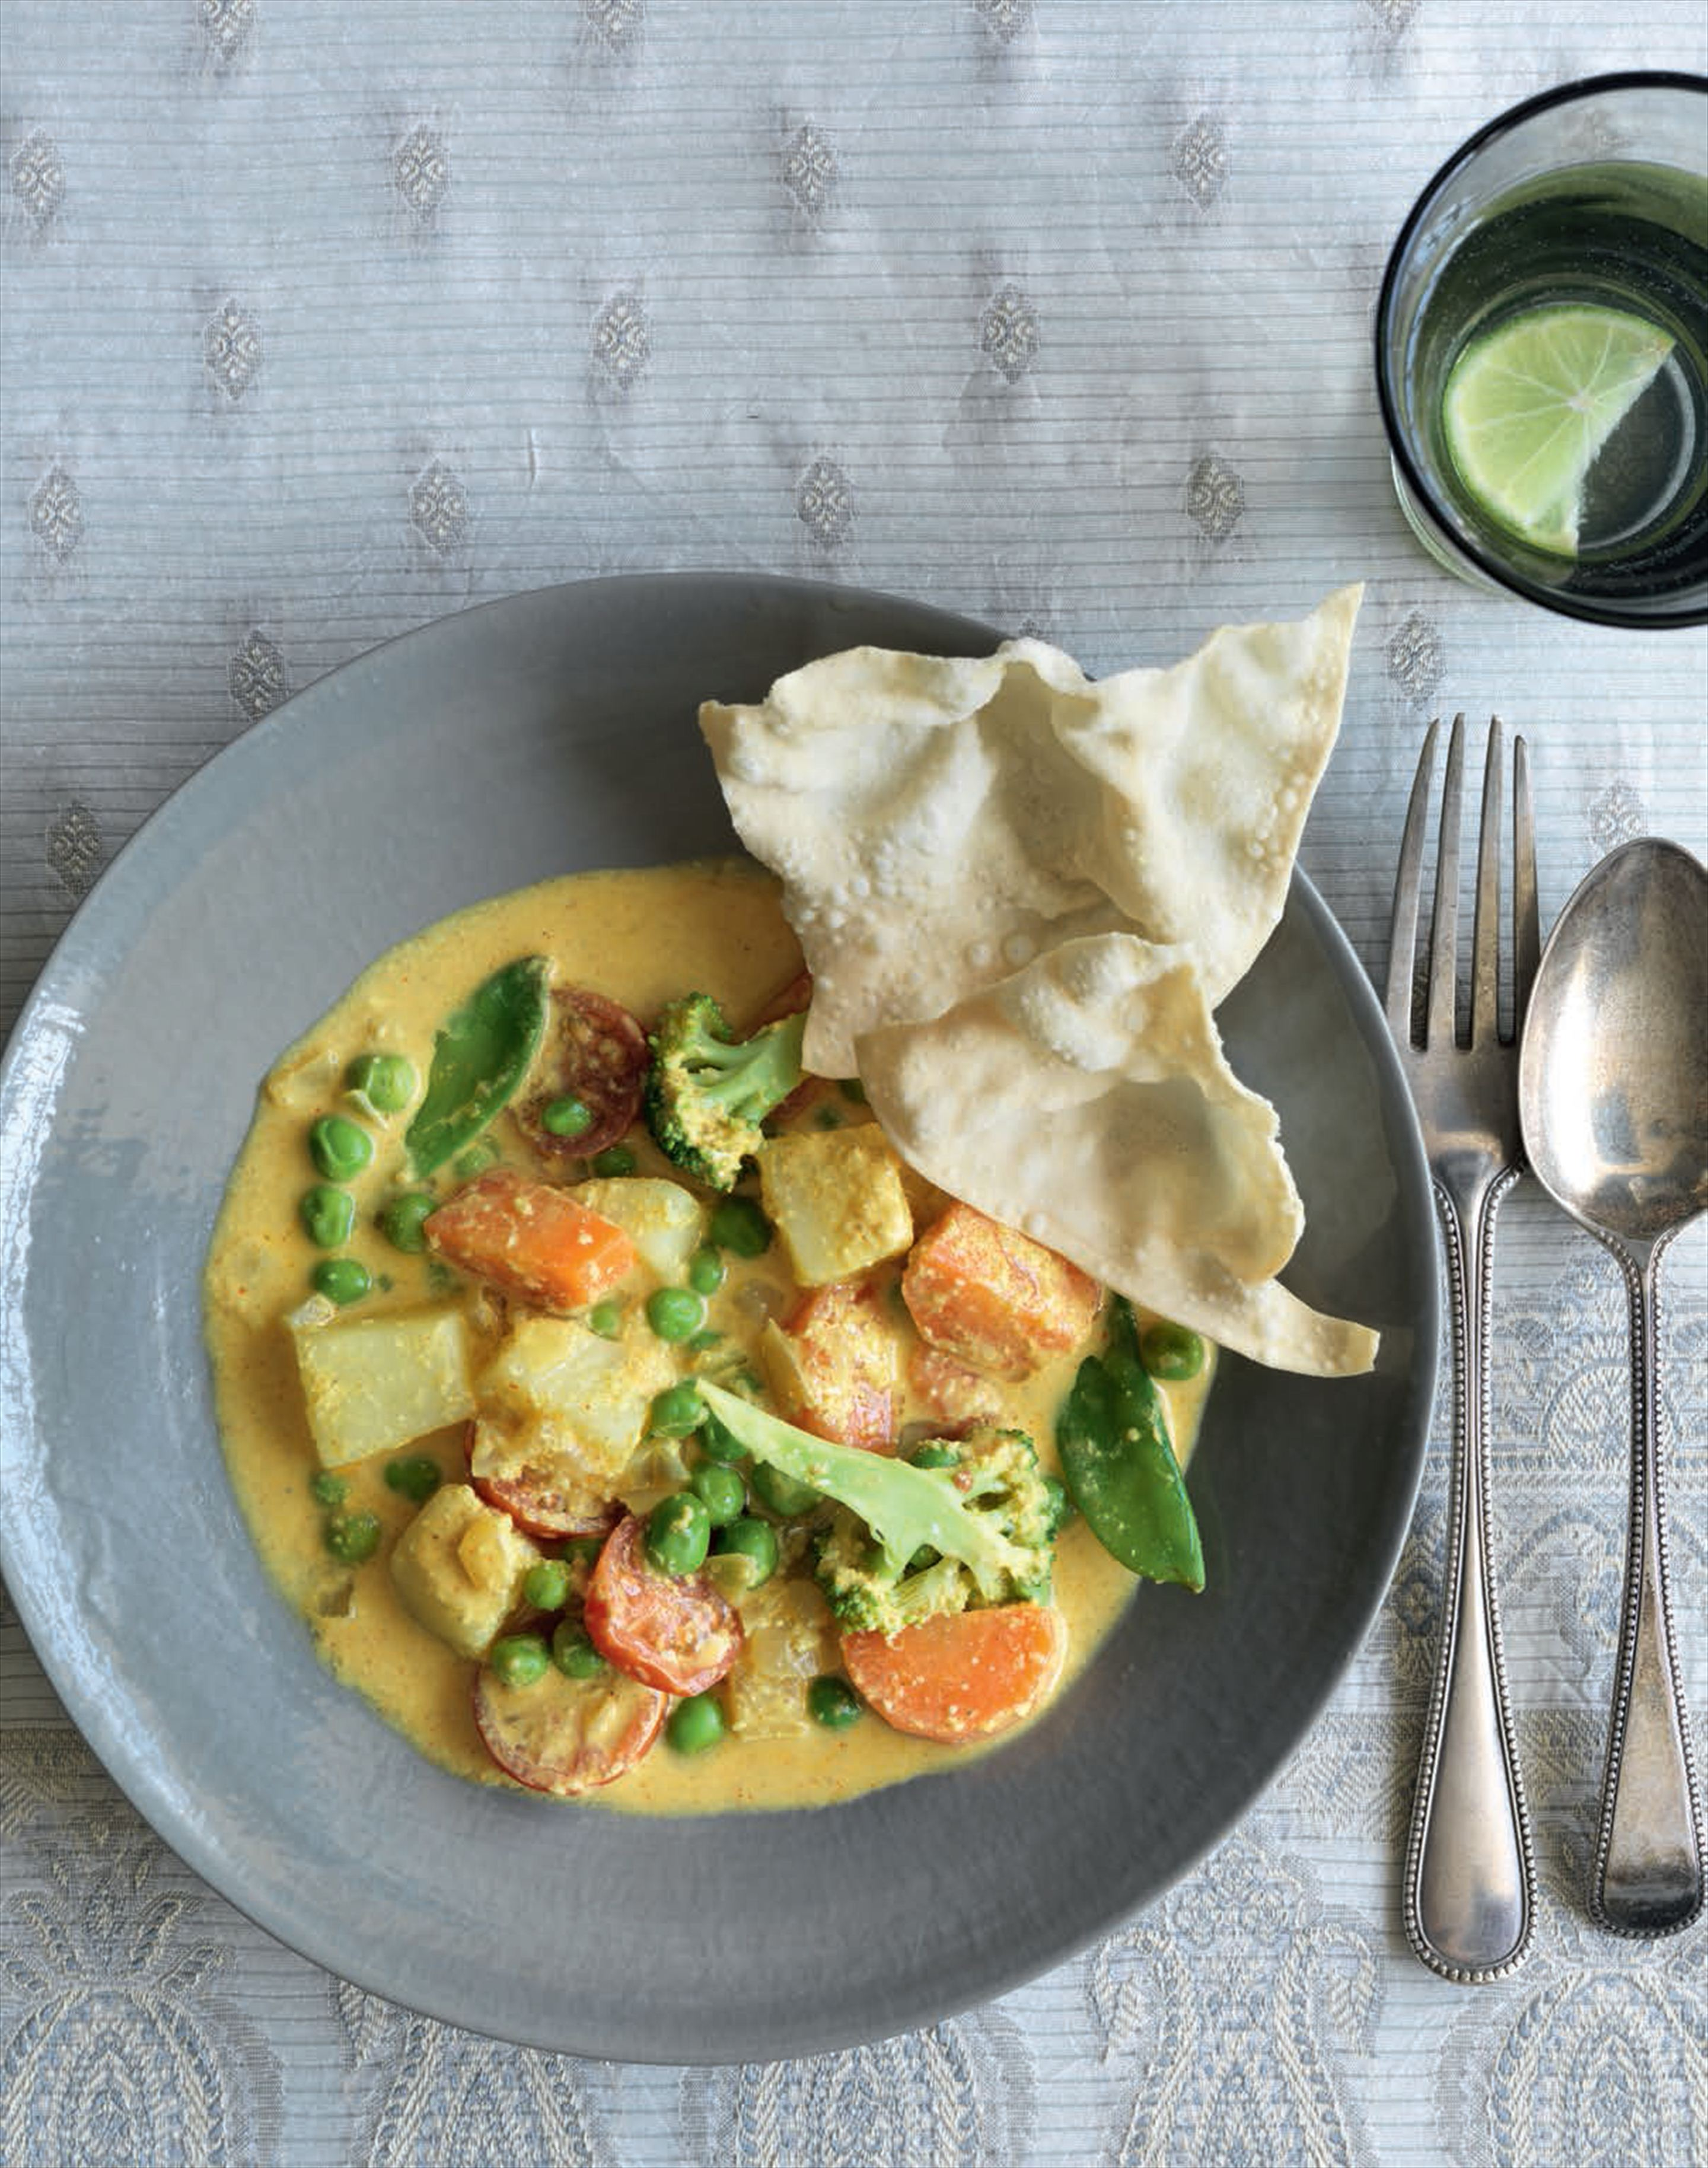 Creamy almond vegetable curry